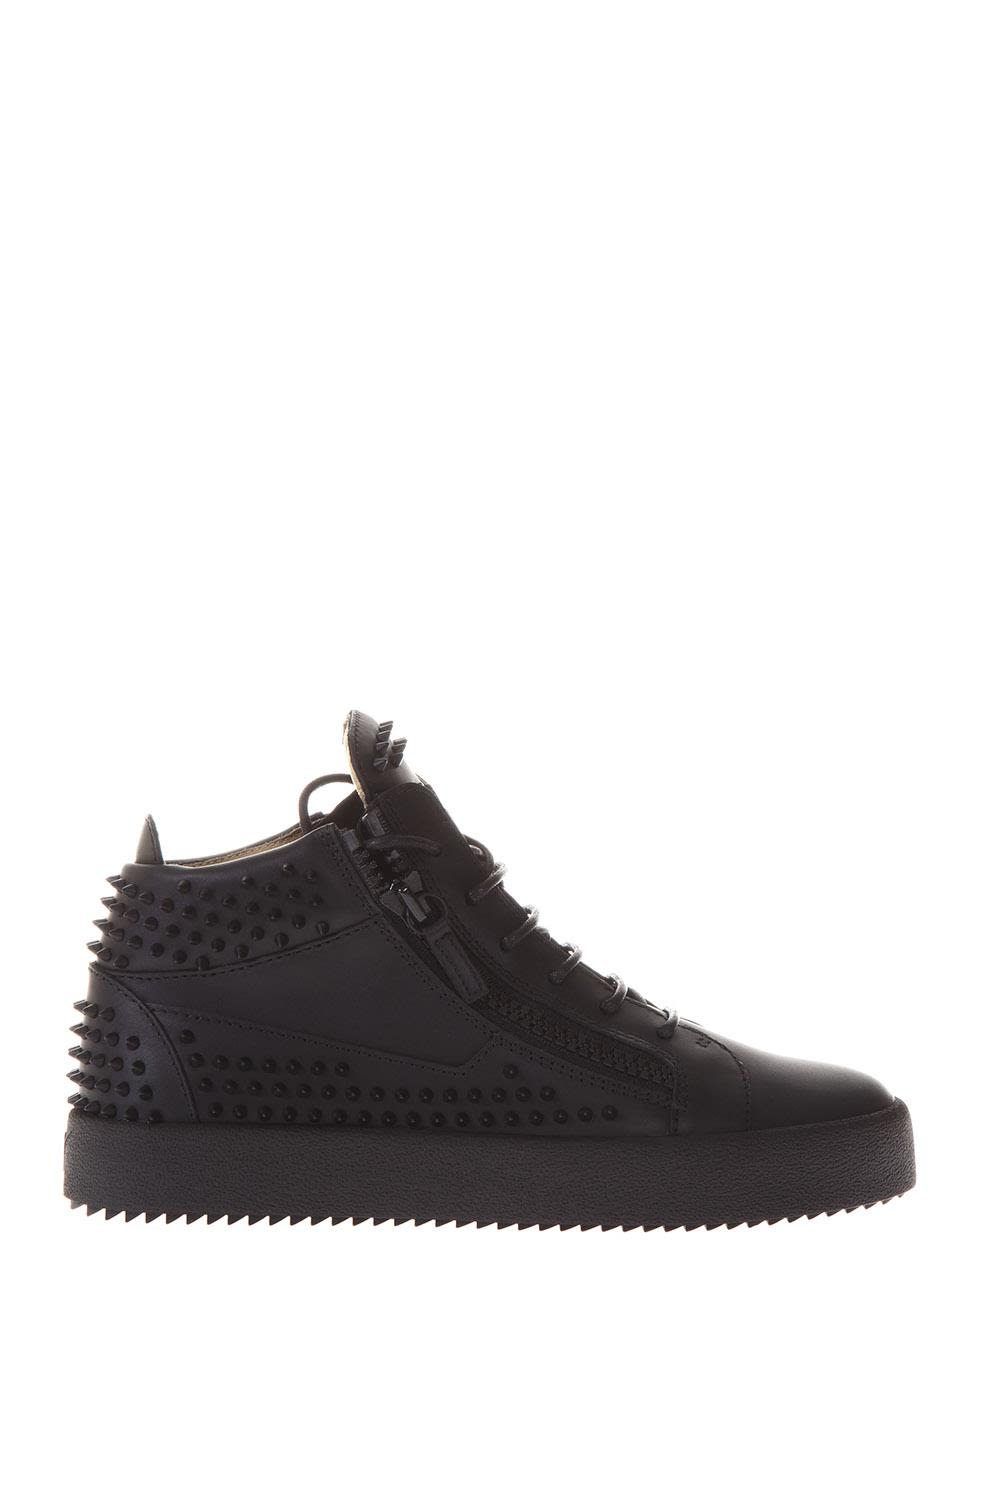 Giuseppe Zanotti Studded Leather High-top Sneakers